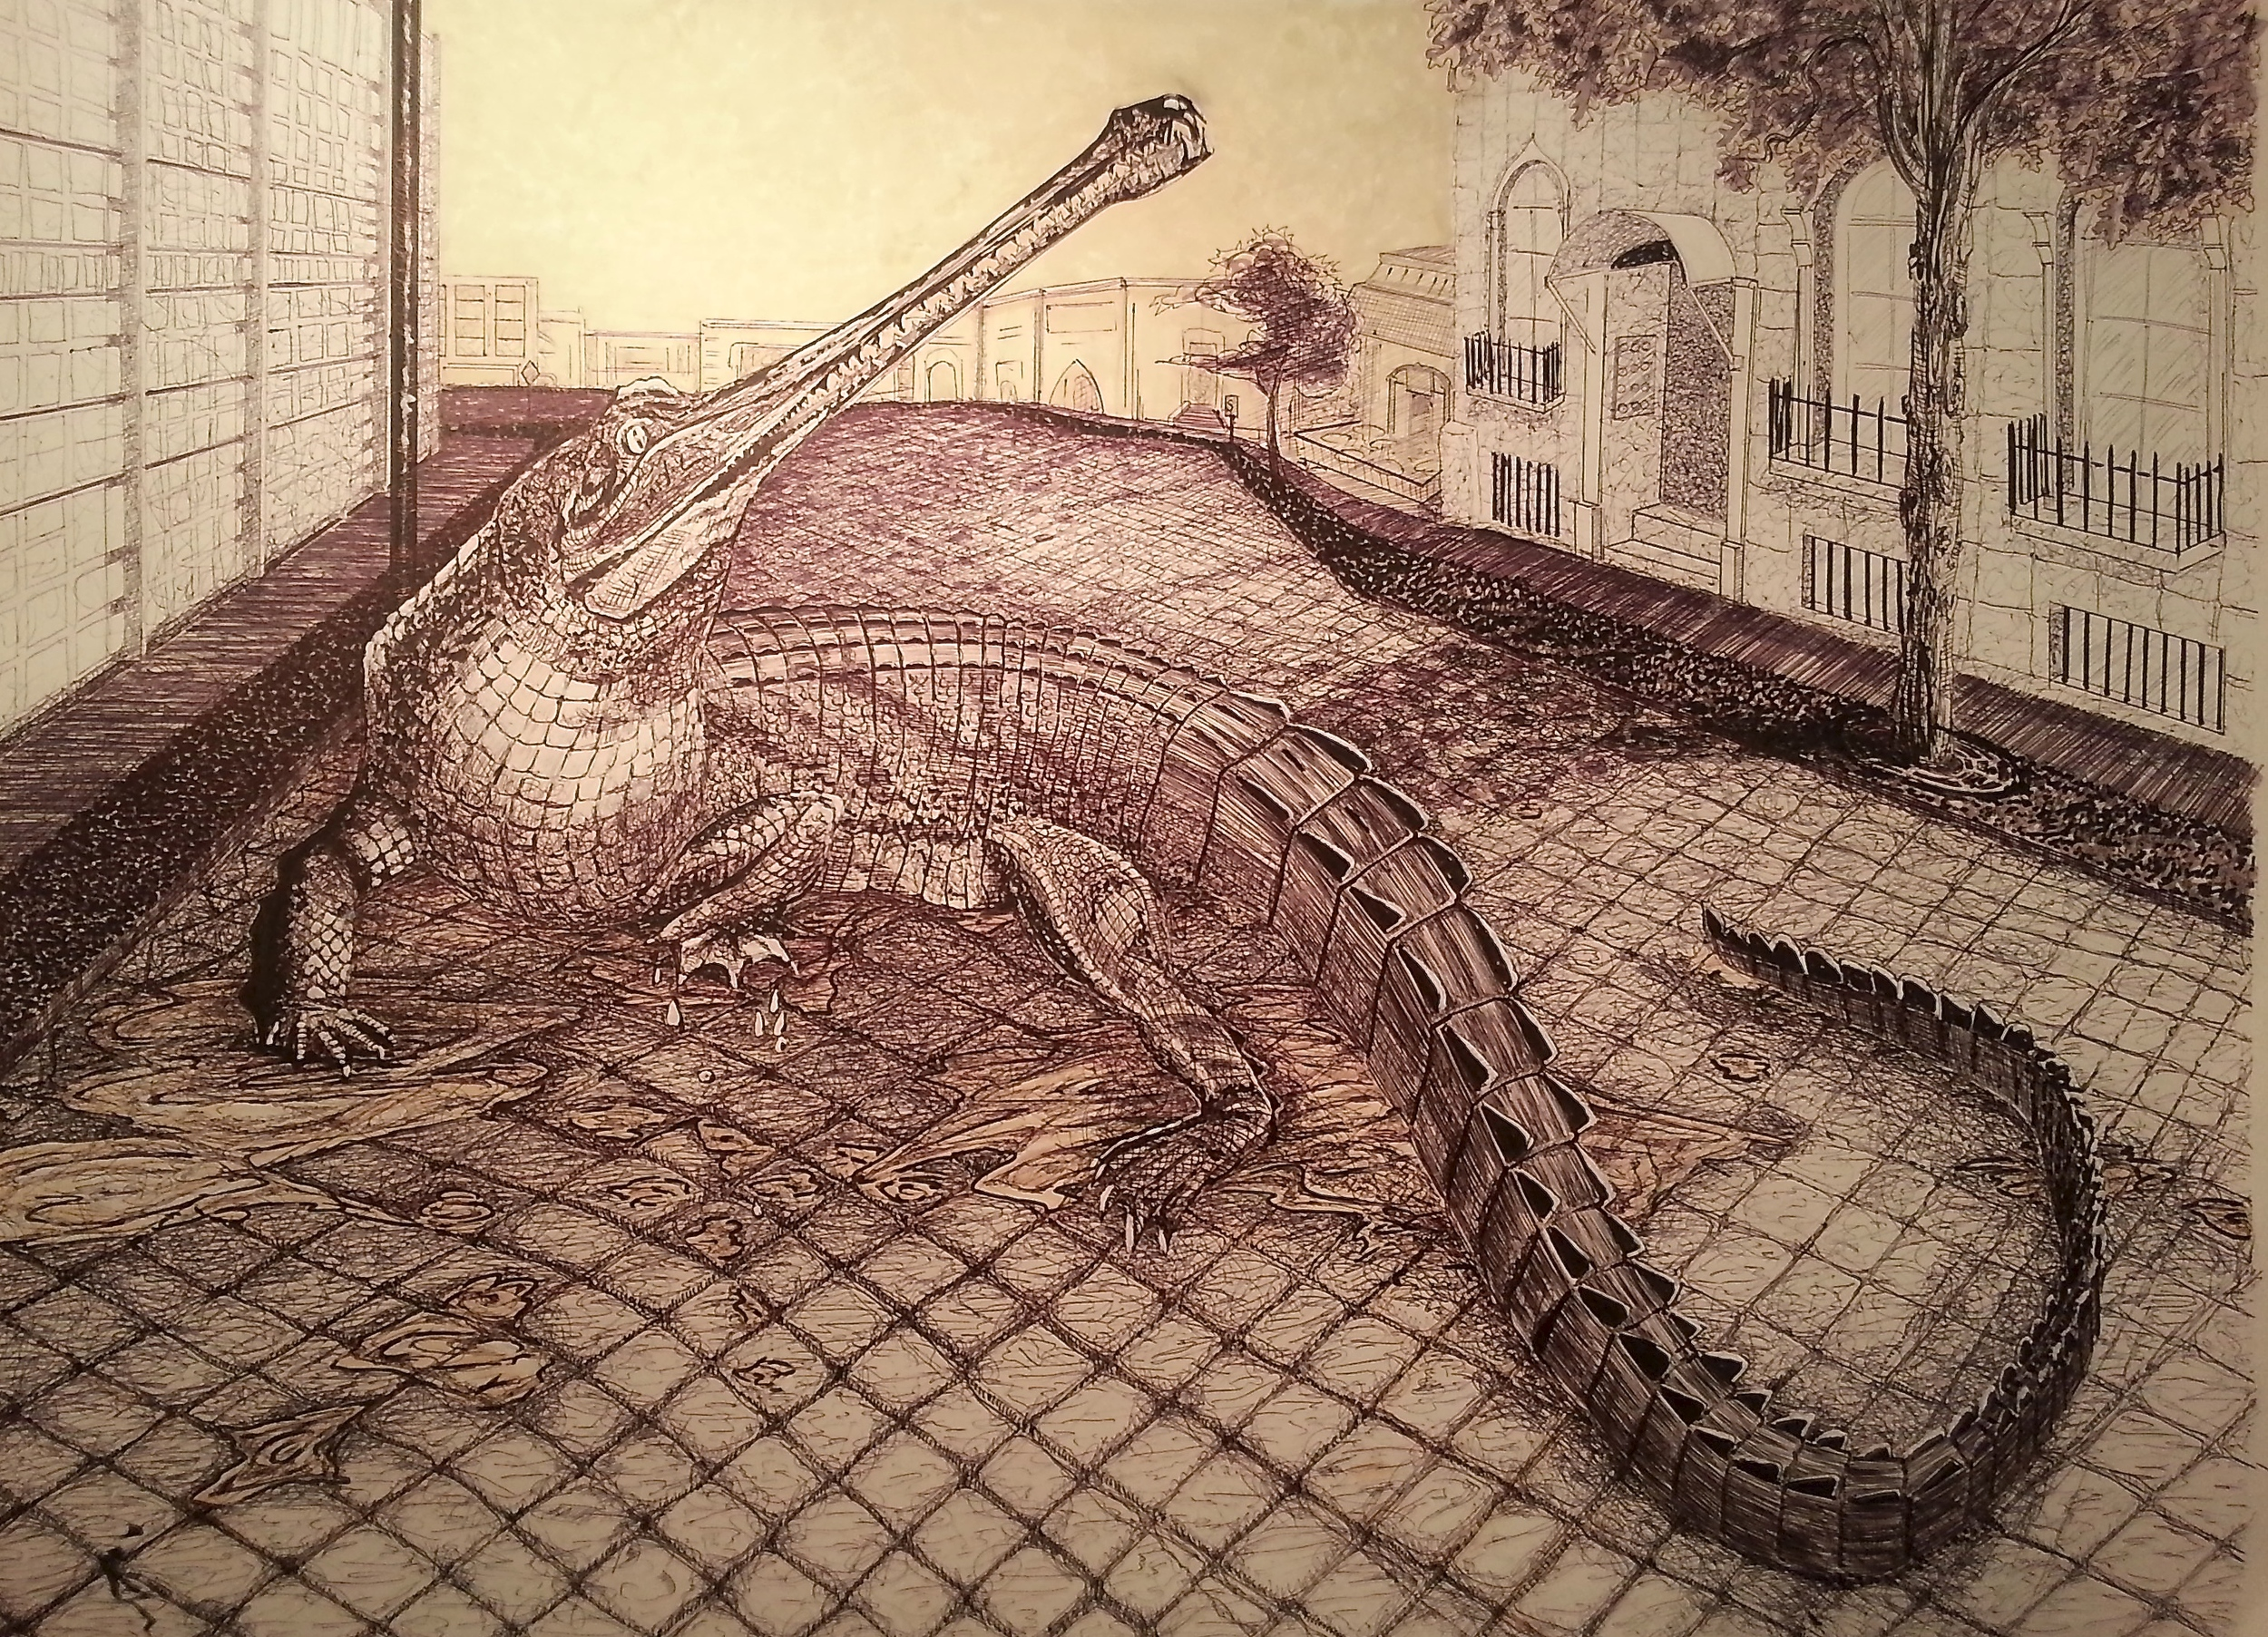 Gator Drawing.jpg